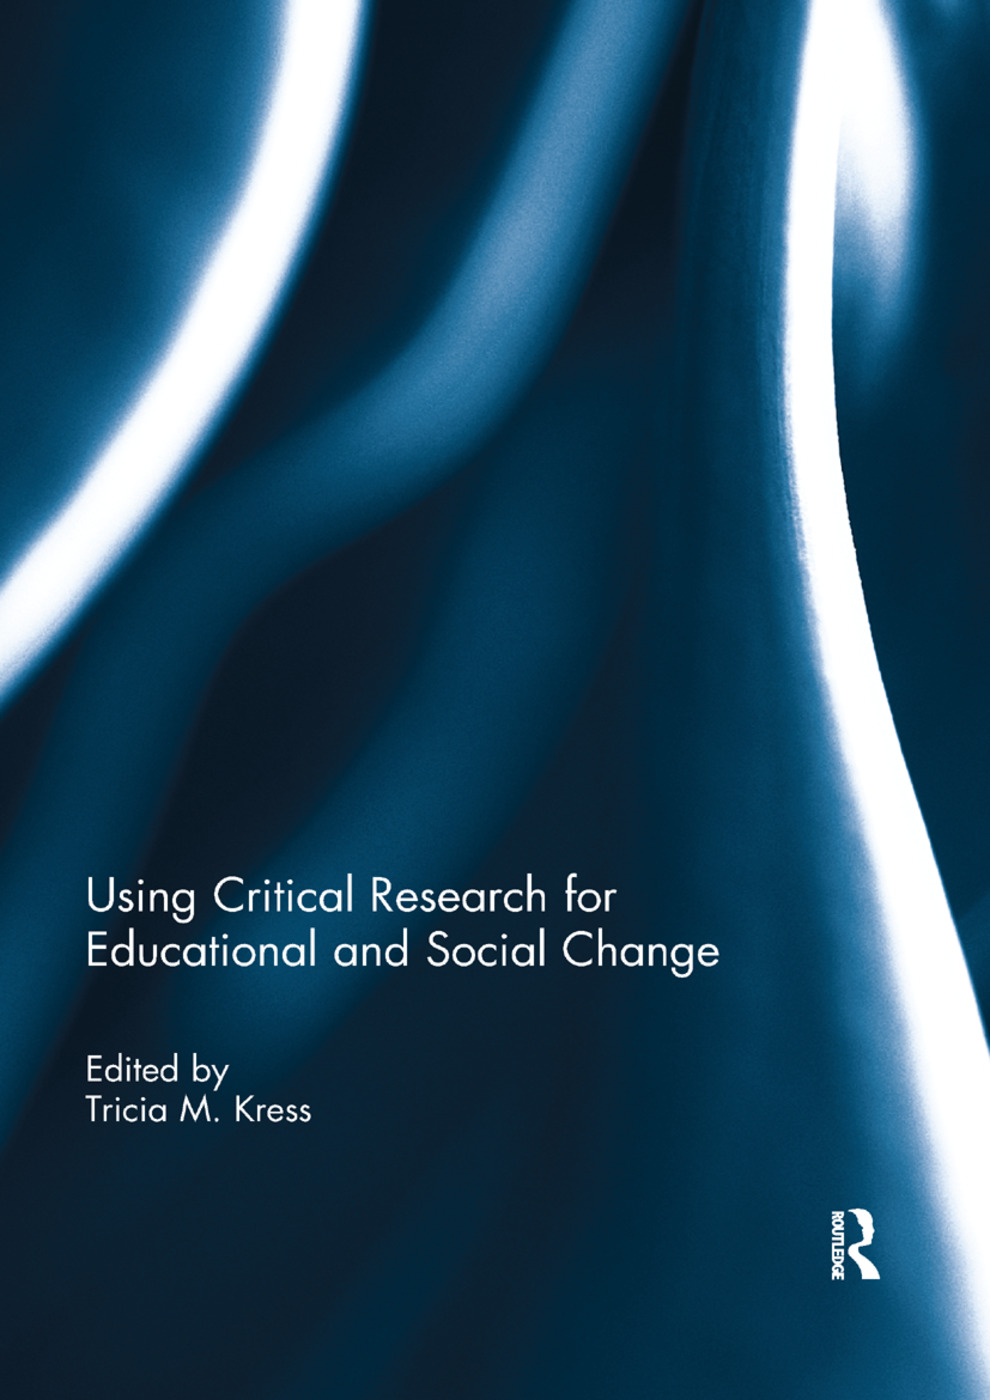 Using Critical Research for Educational and Social Change: 1st Edition (Paperback) book cover